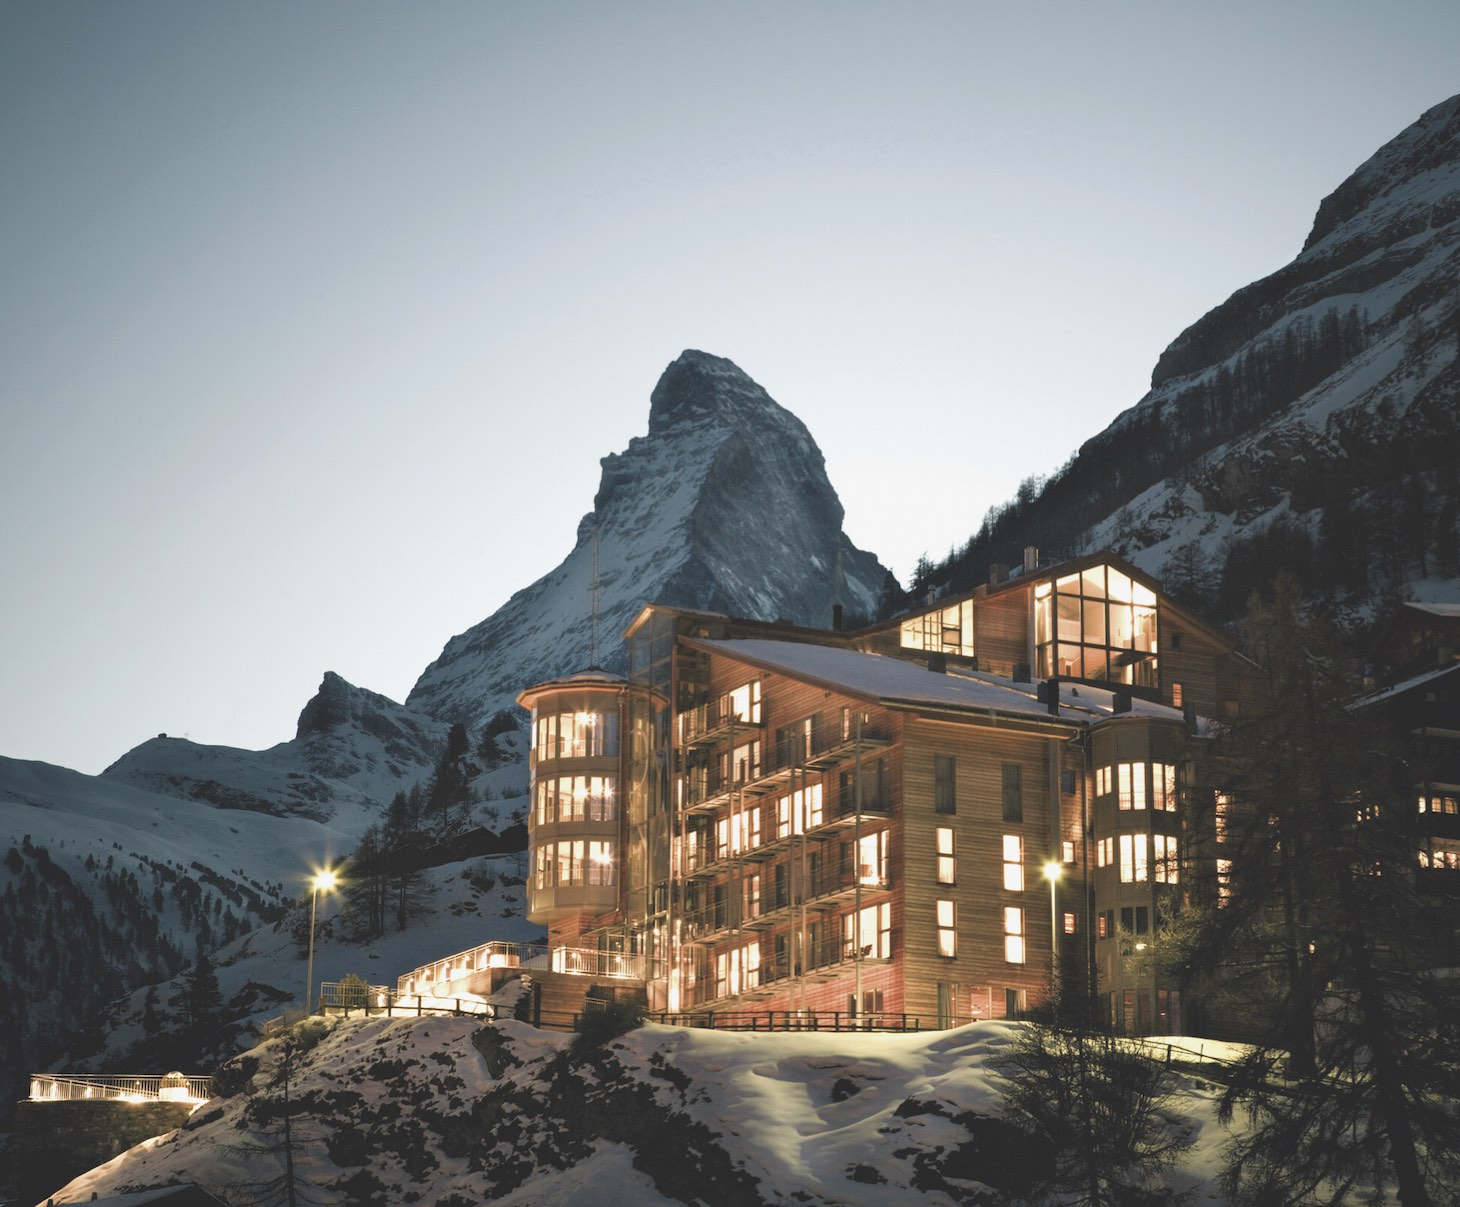 66bbb2aefce6 The Top Ski Resorts In Europe  Where To Hit The Slopes In Style This ...